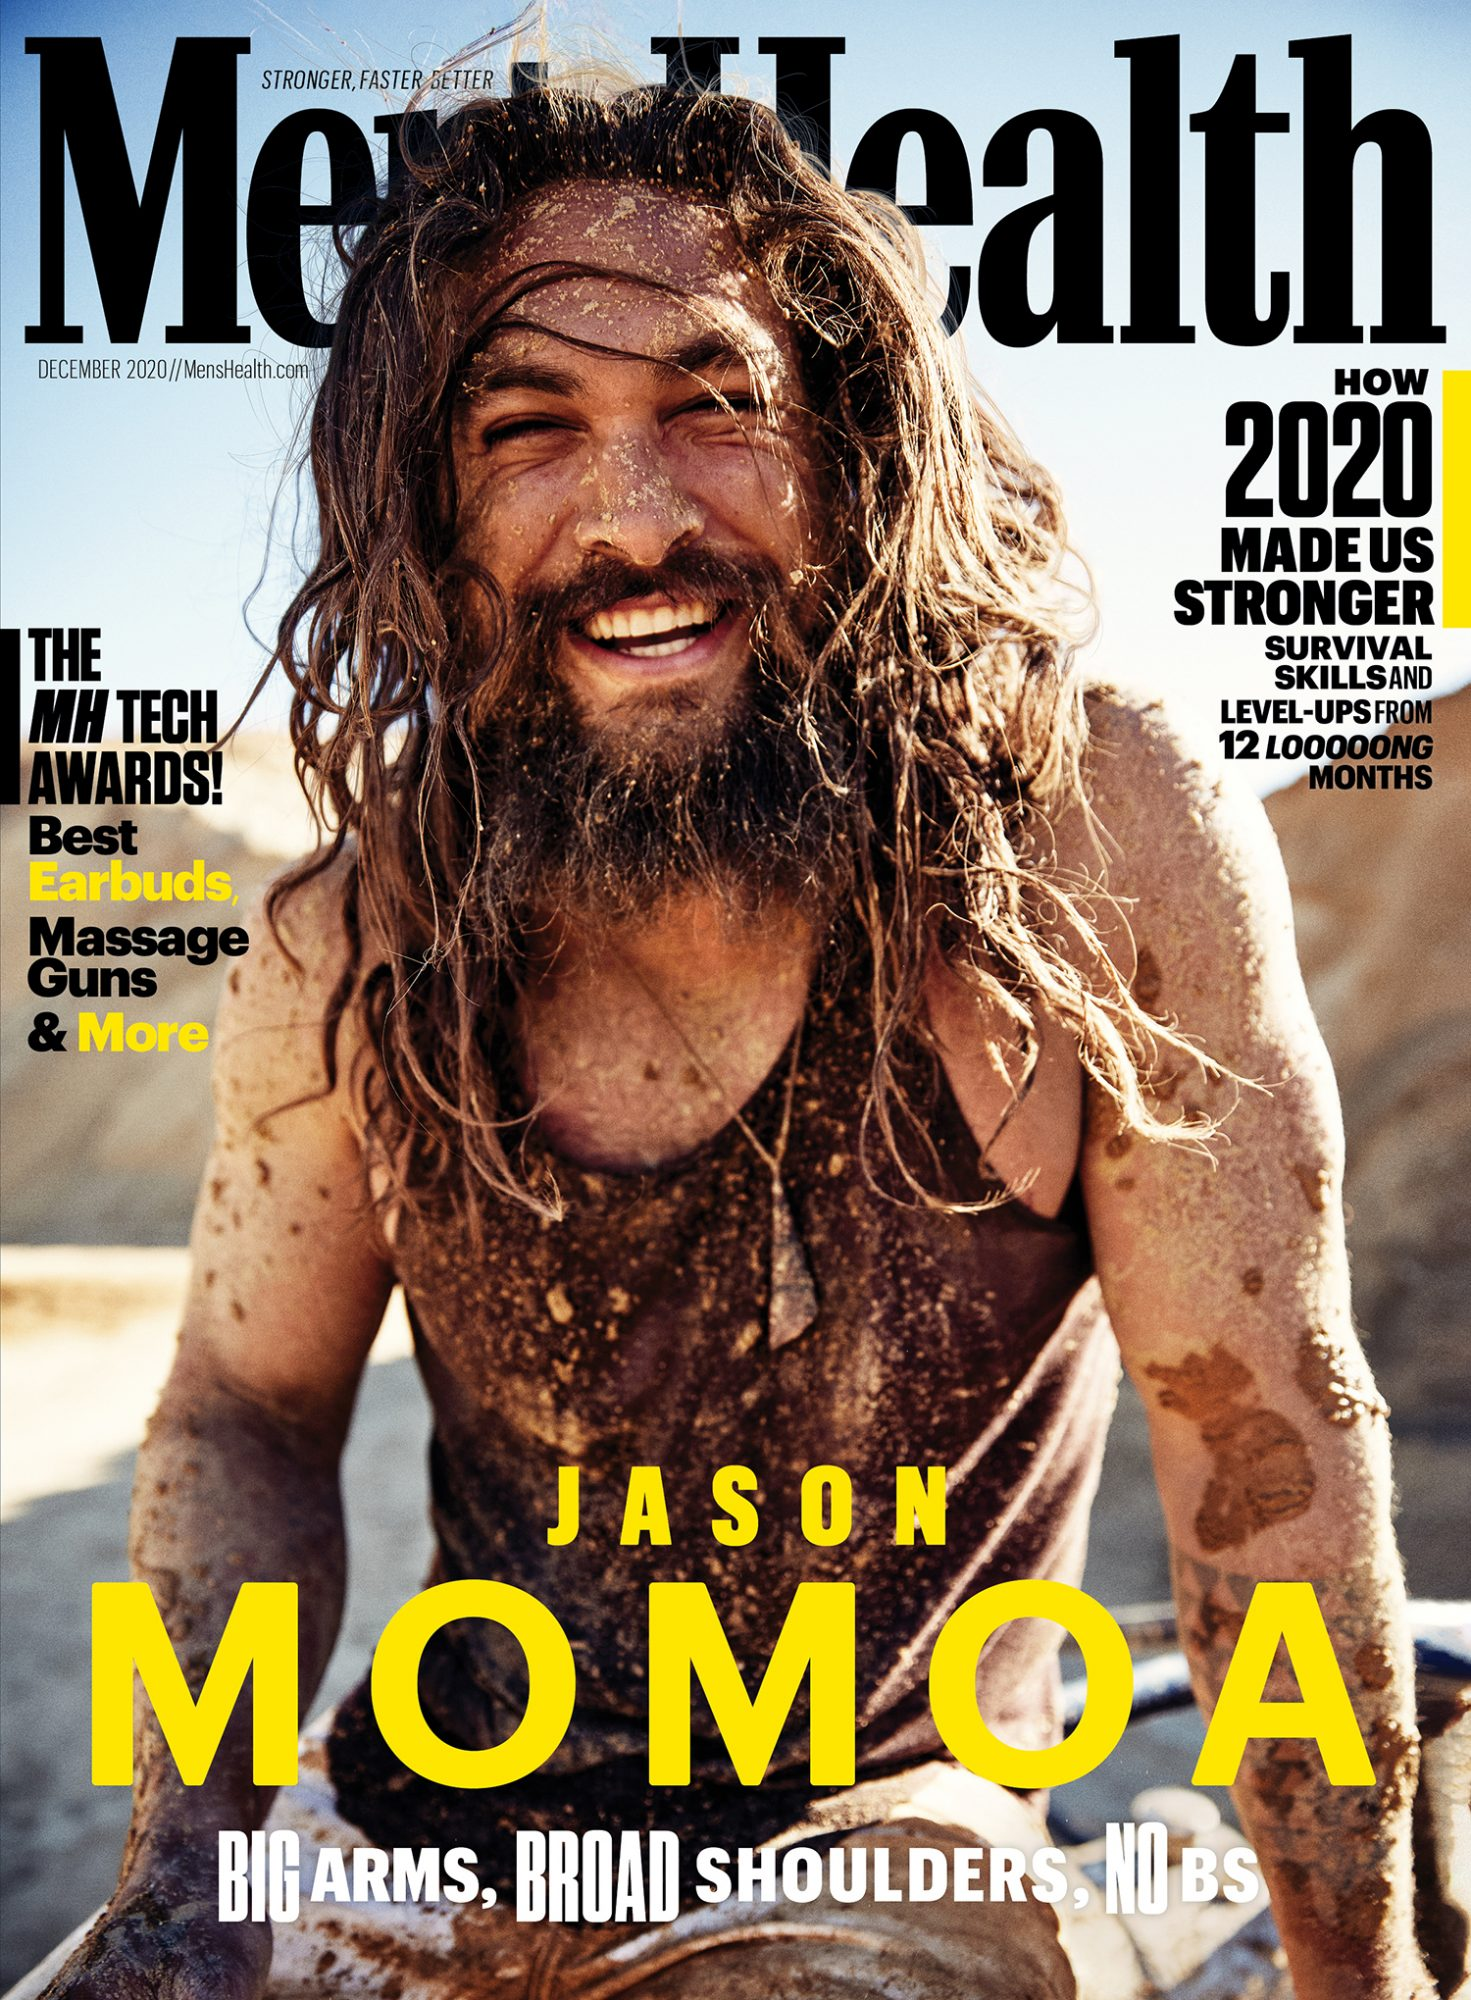 Jason Momoa in Men's Health